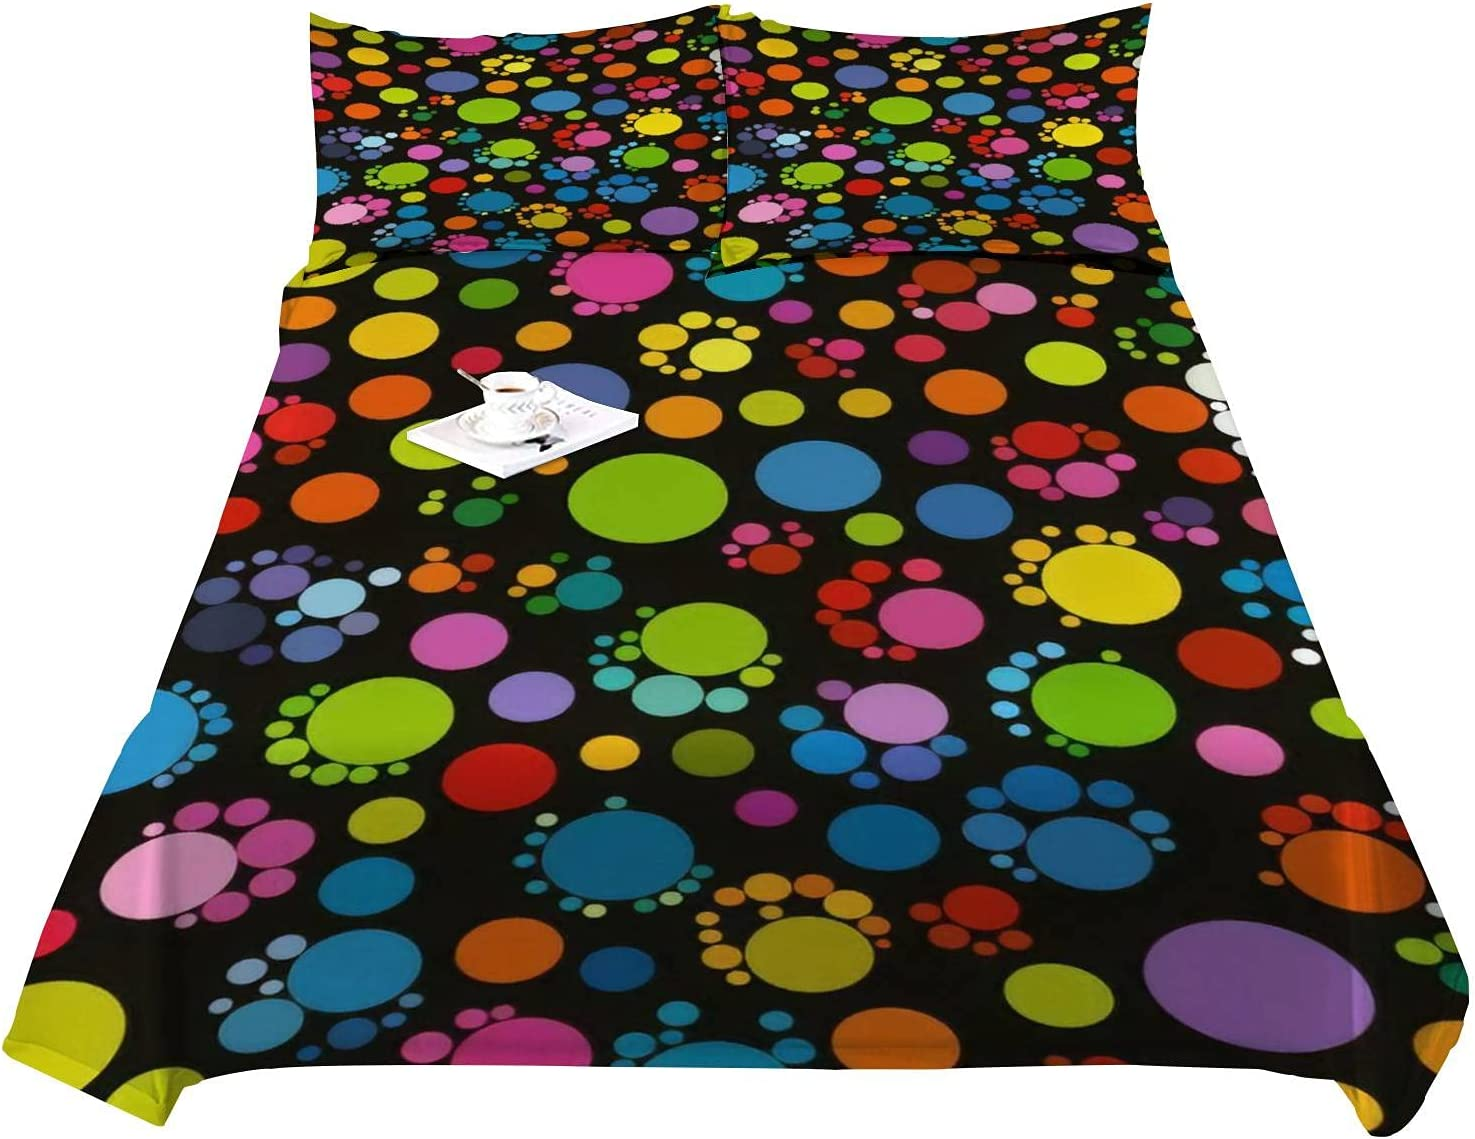 Cooling Sheets New York Mall Set Colorful Abstract Popular brand in the world and Circles Backgrounds